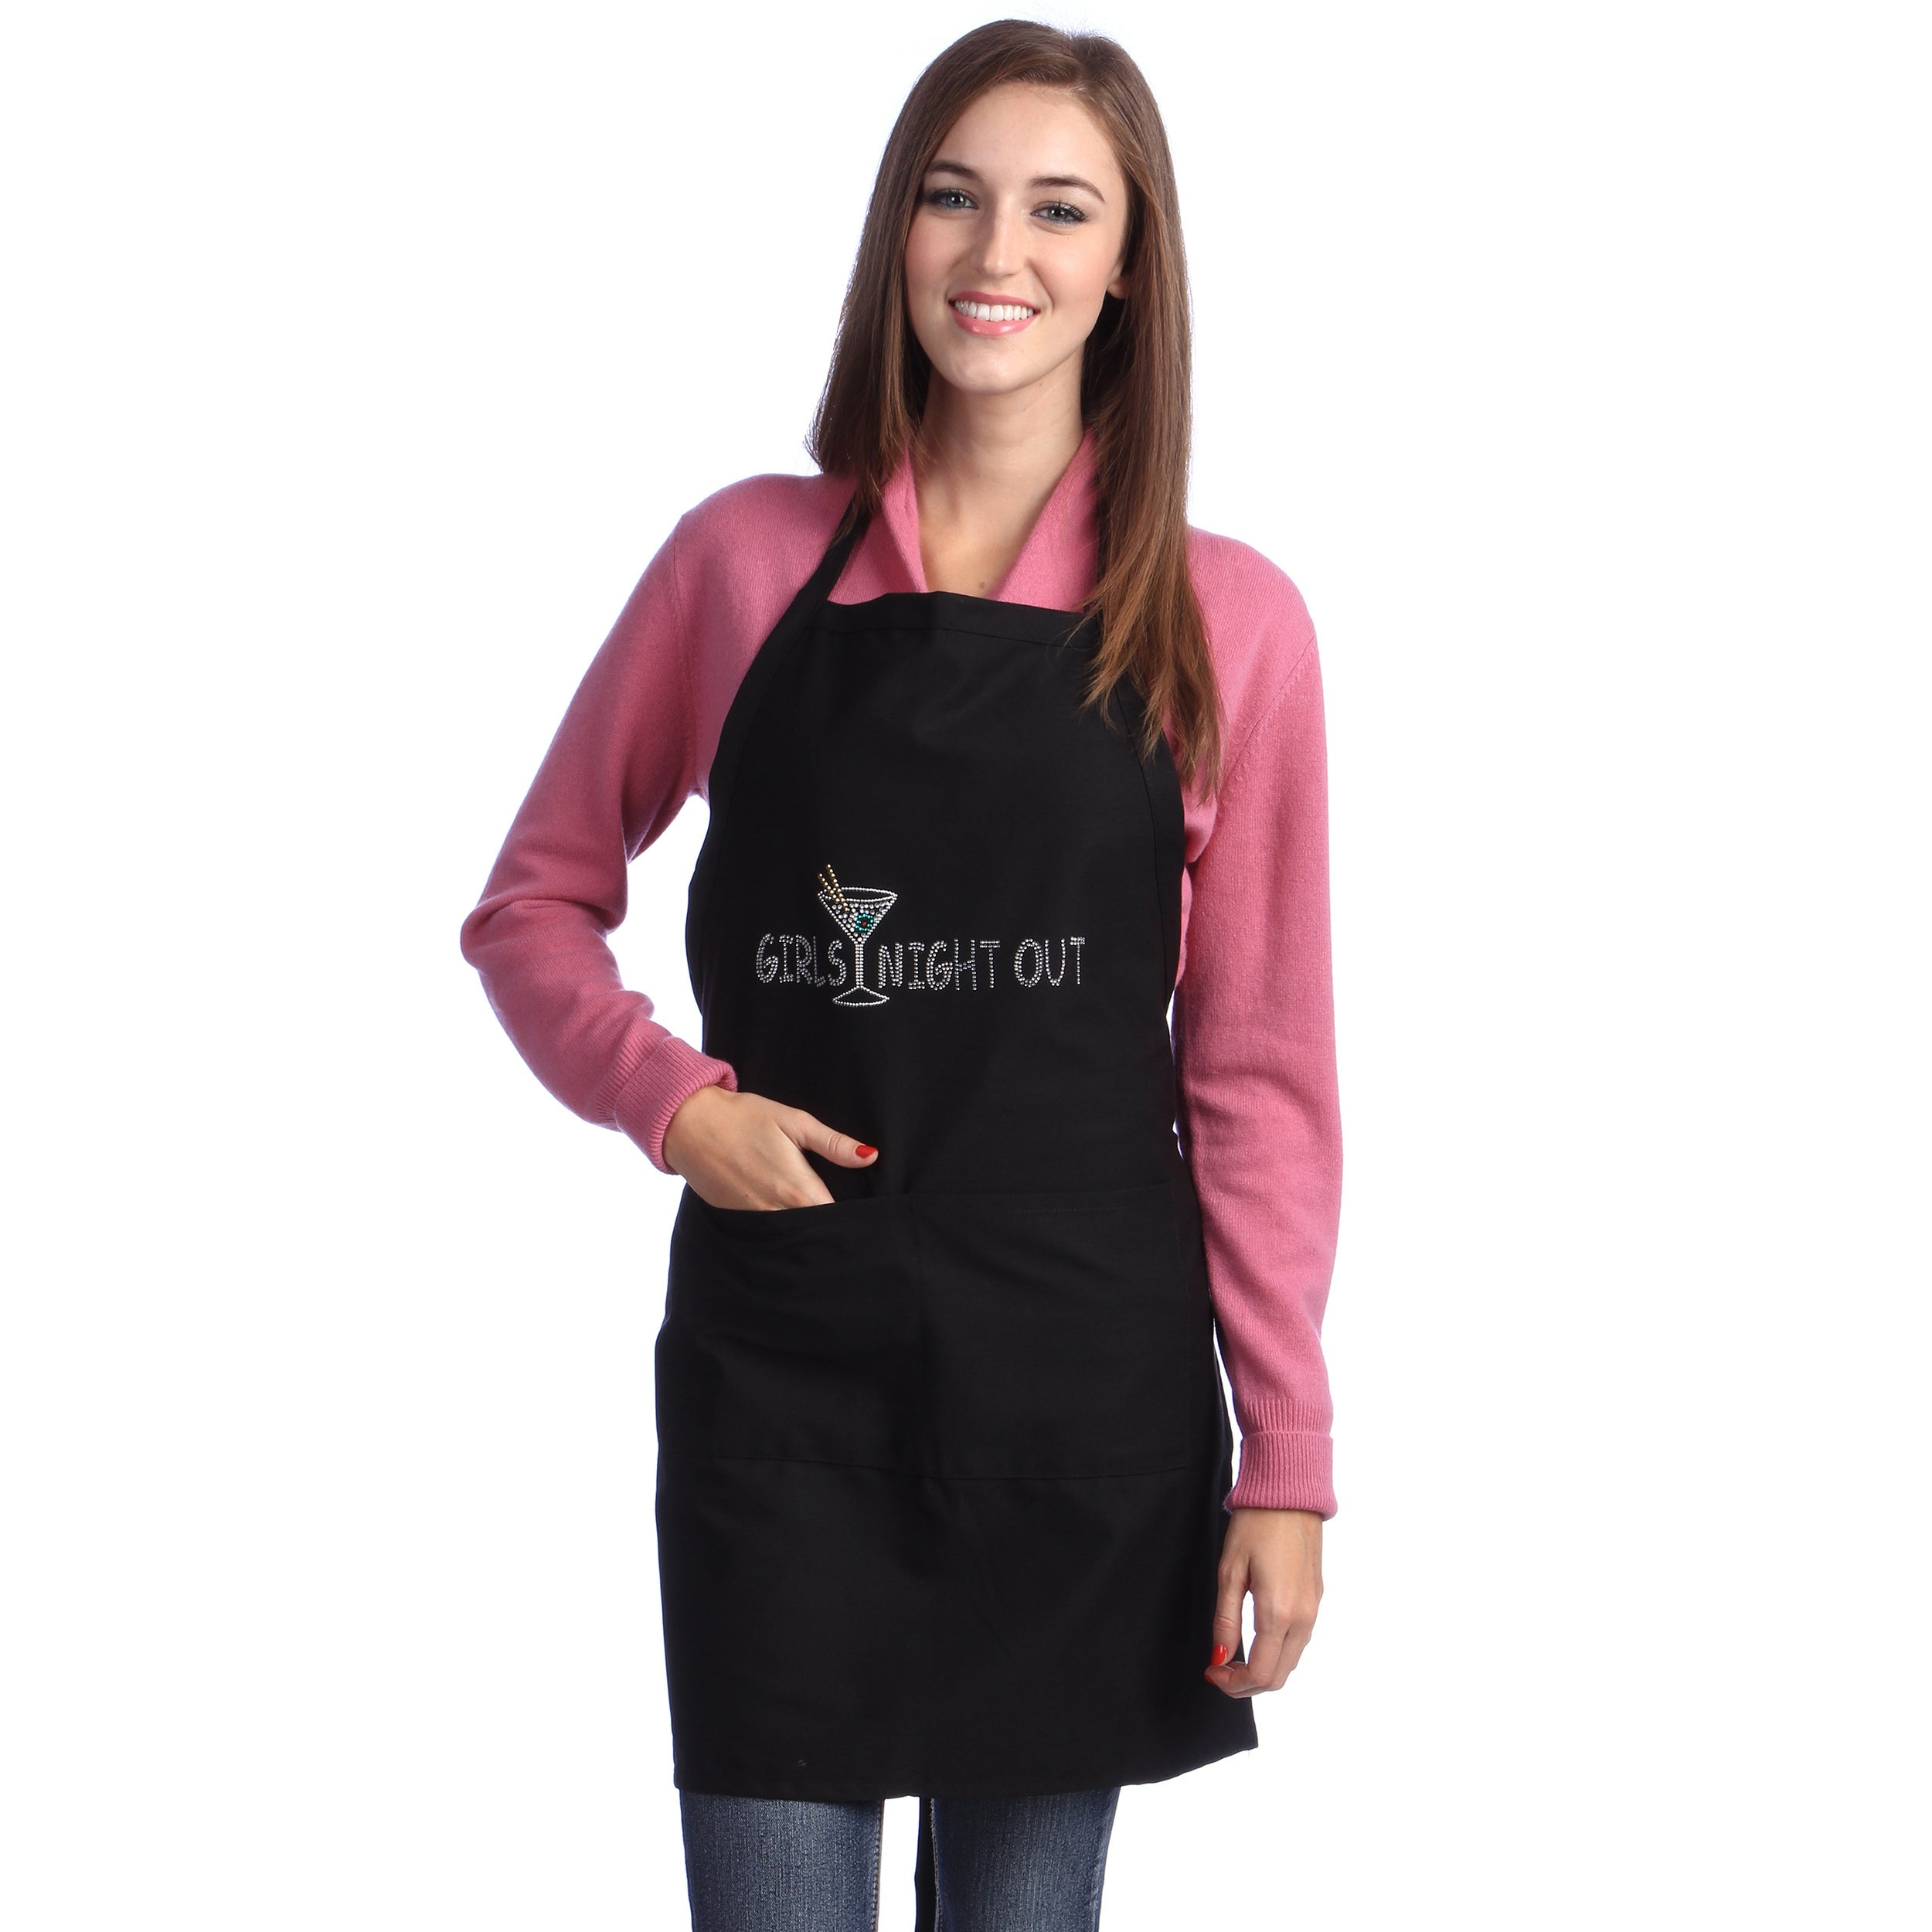 Kaufman Girls Night Out Rhinestone Apron Adjustable Neck 2 Pockets On Sale Overstock 8276520